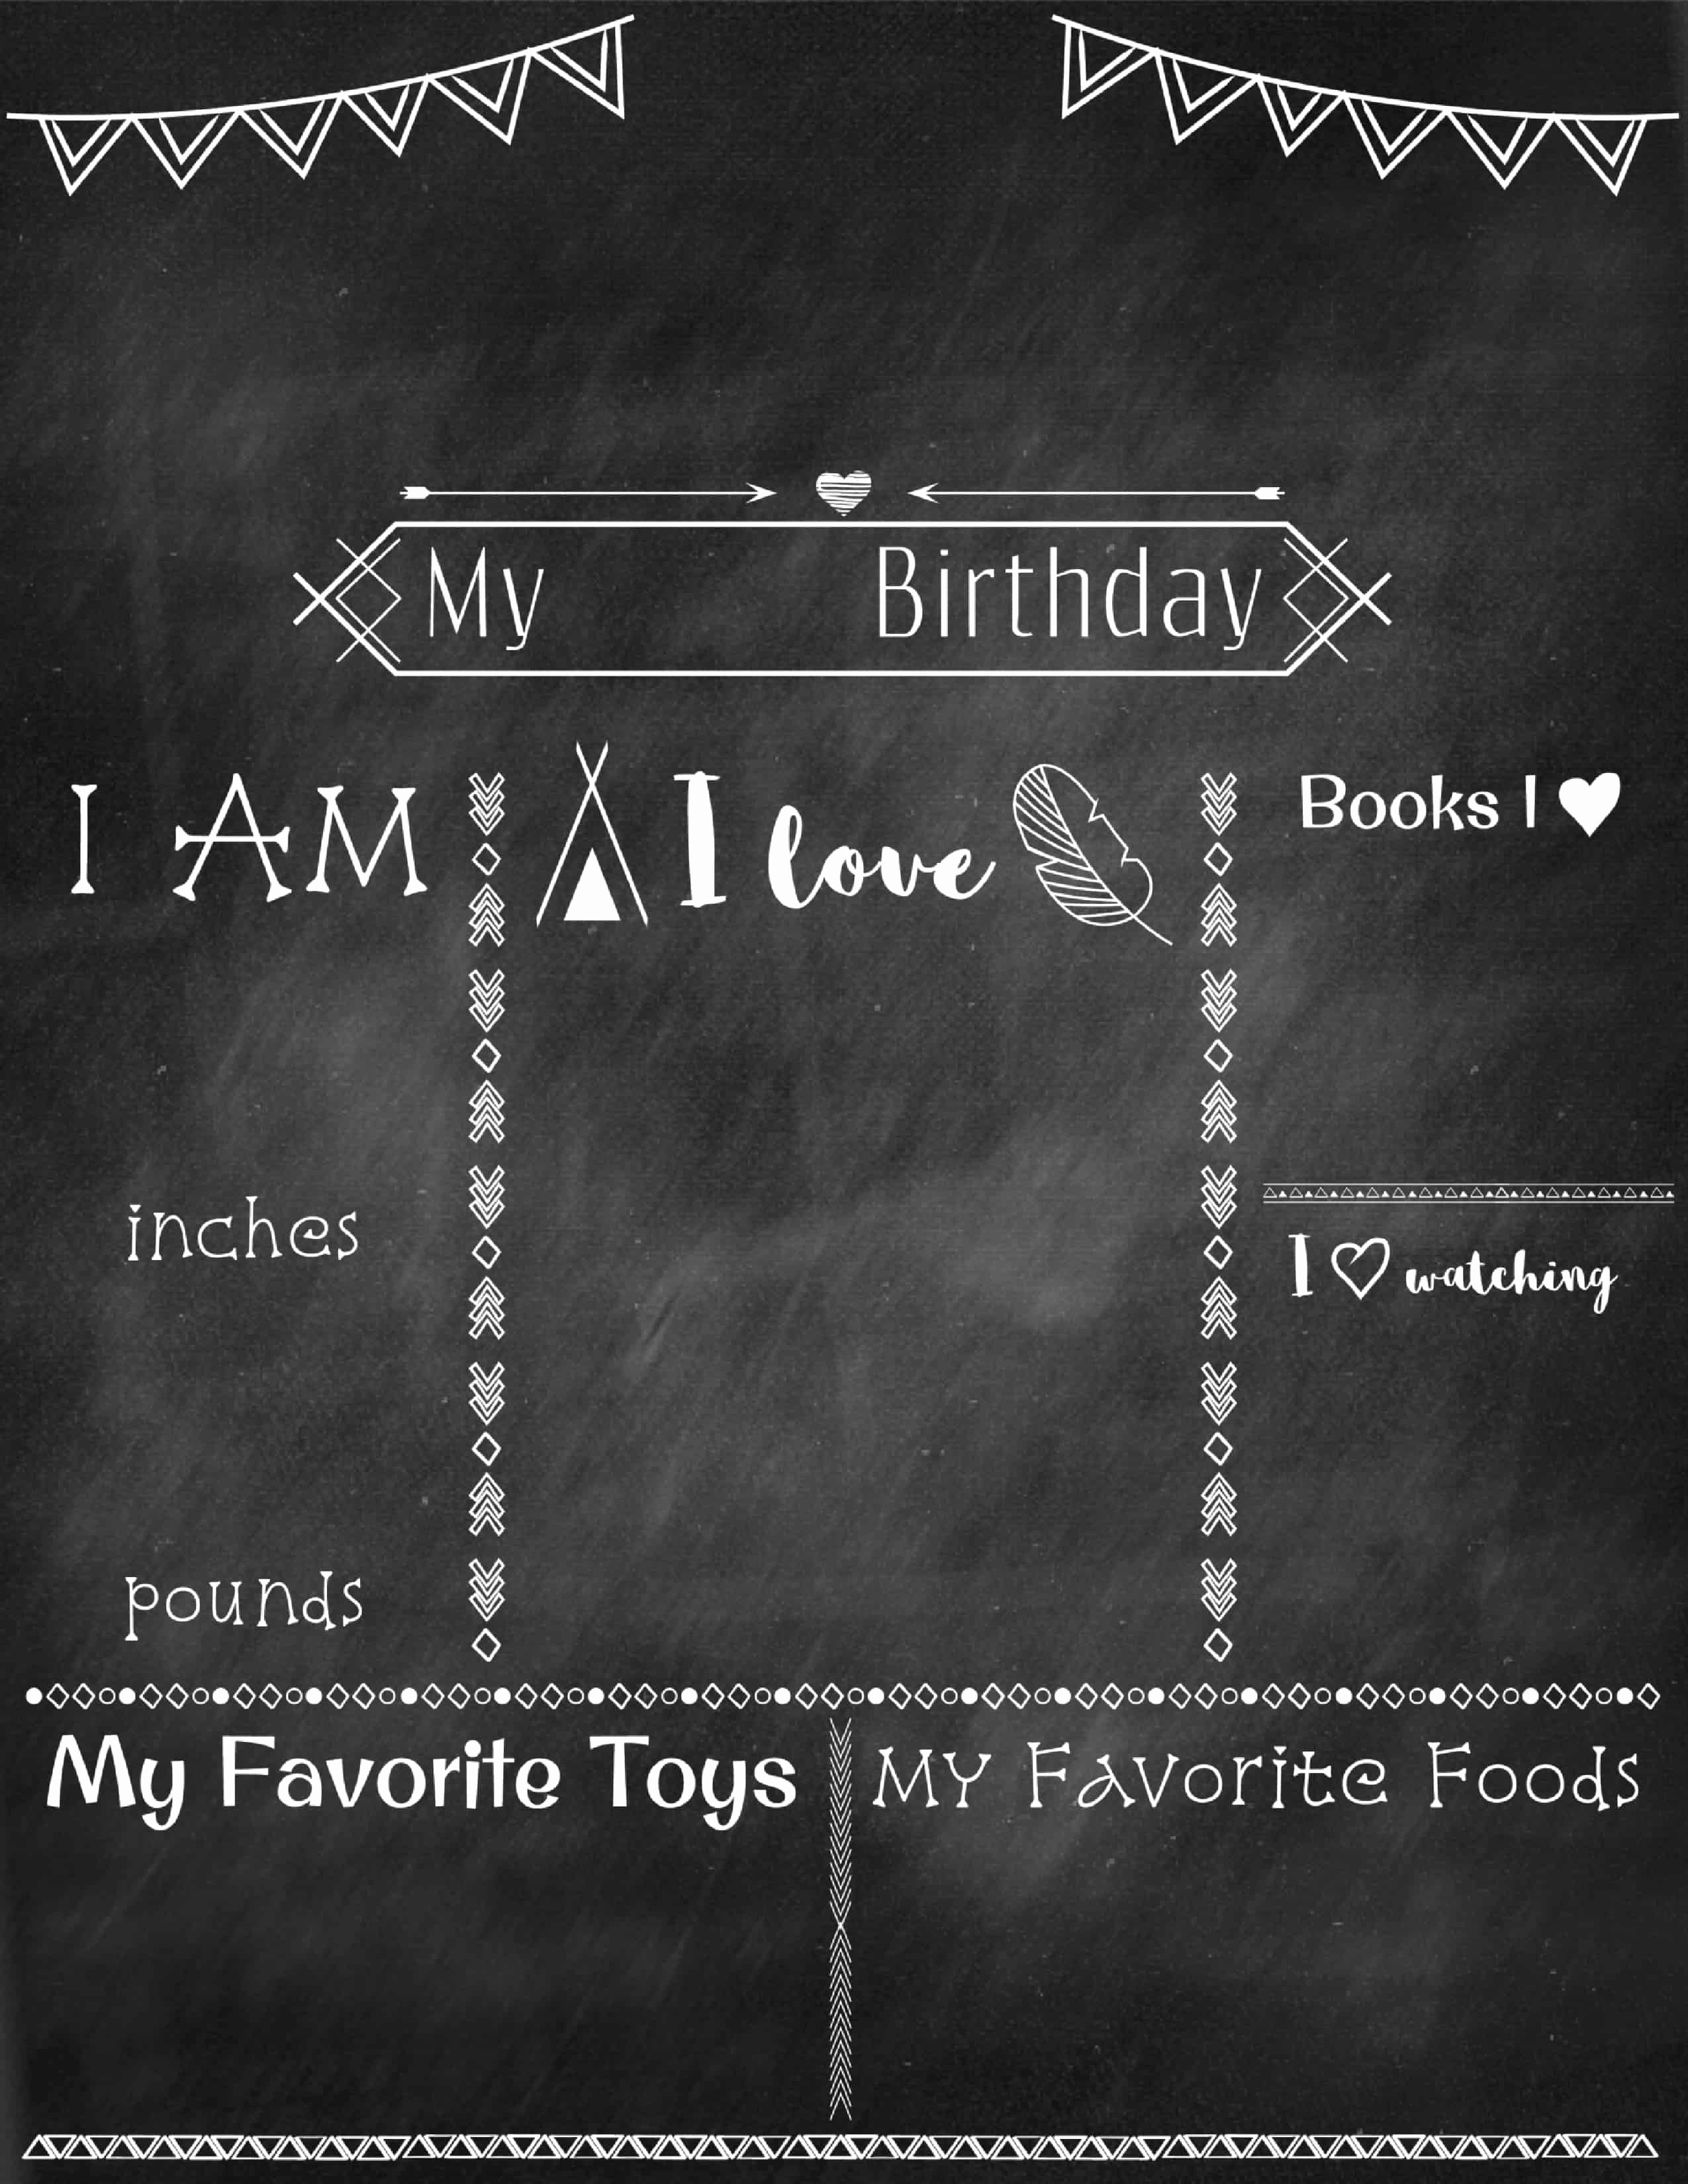 Chalkboard Poster Template Free Inspirational Birthday Poster Template Free with Step by Step Tutorial